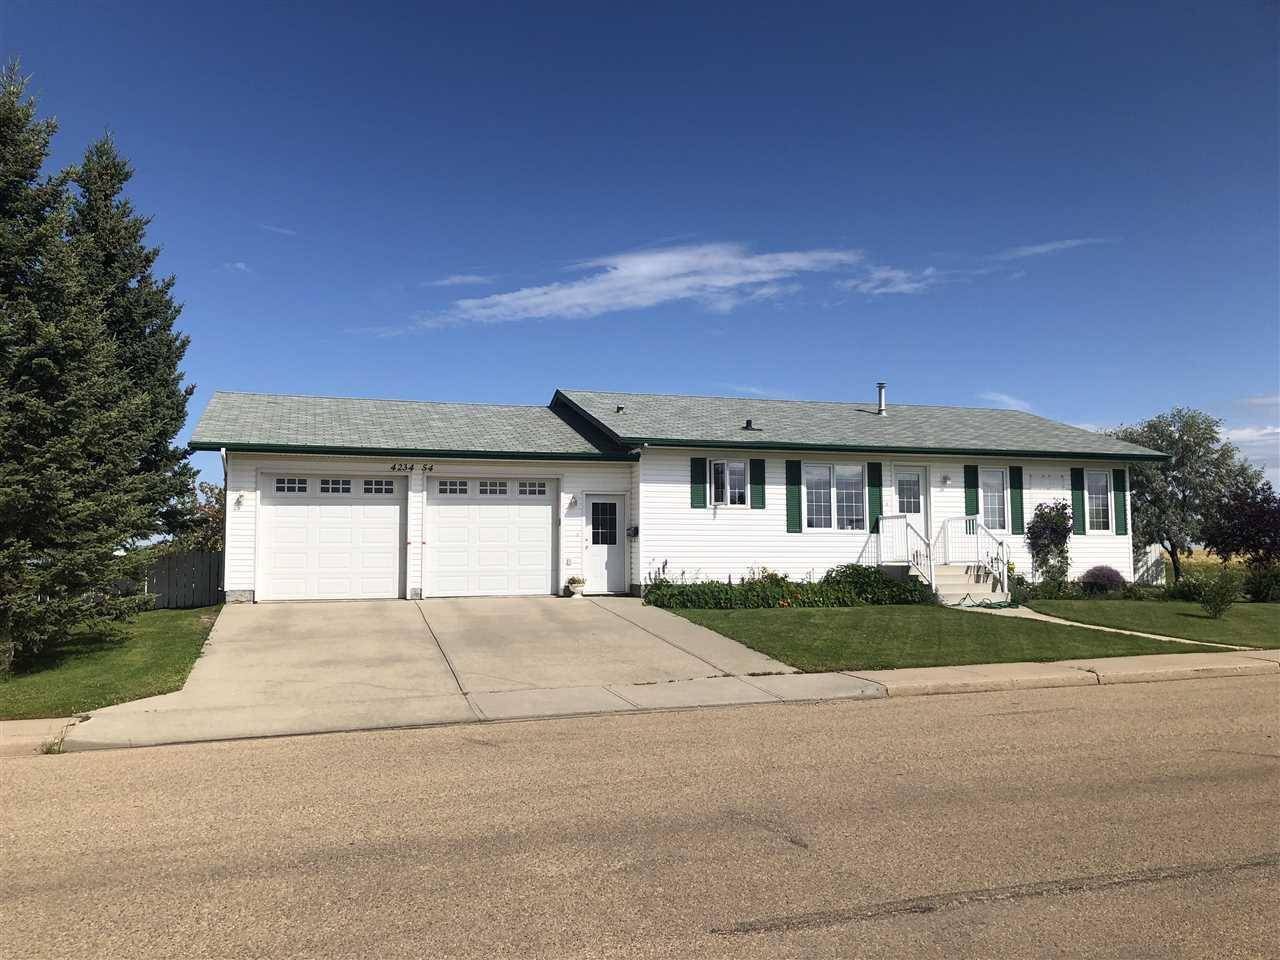 House for sale at 4234 54 Ave Tofield Alberta - MLS: E4183251